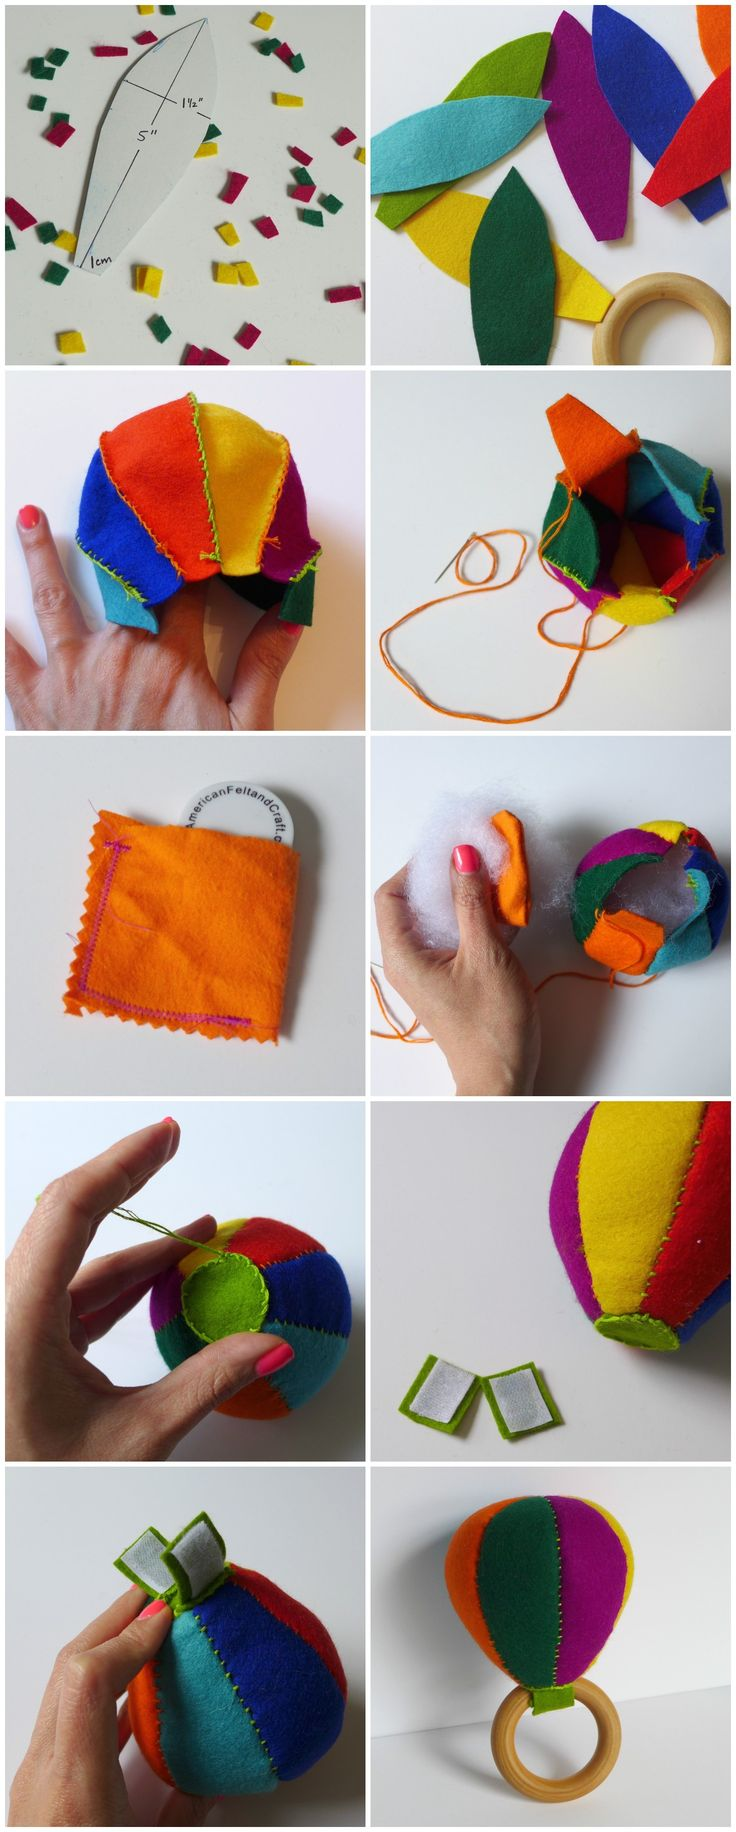 Tutorial to make a felt DIY Maraca Baby Rattle - Great craft project for Cinco de Mayo - by Yay for Handmade!